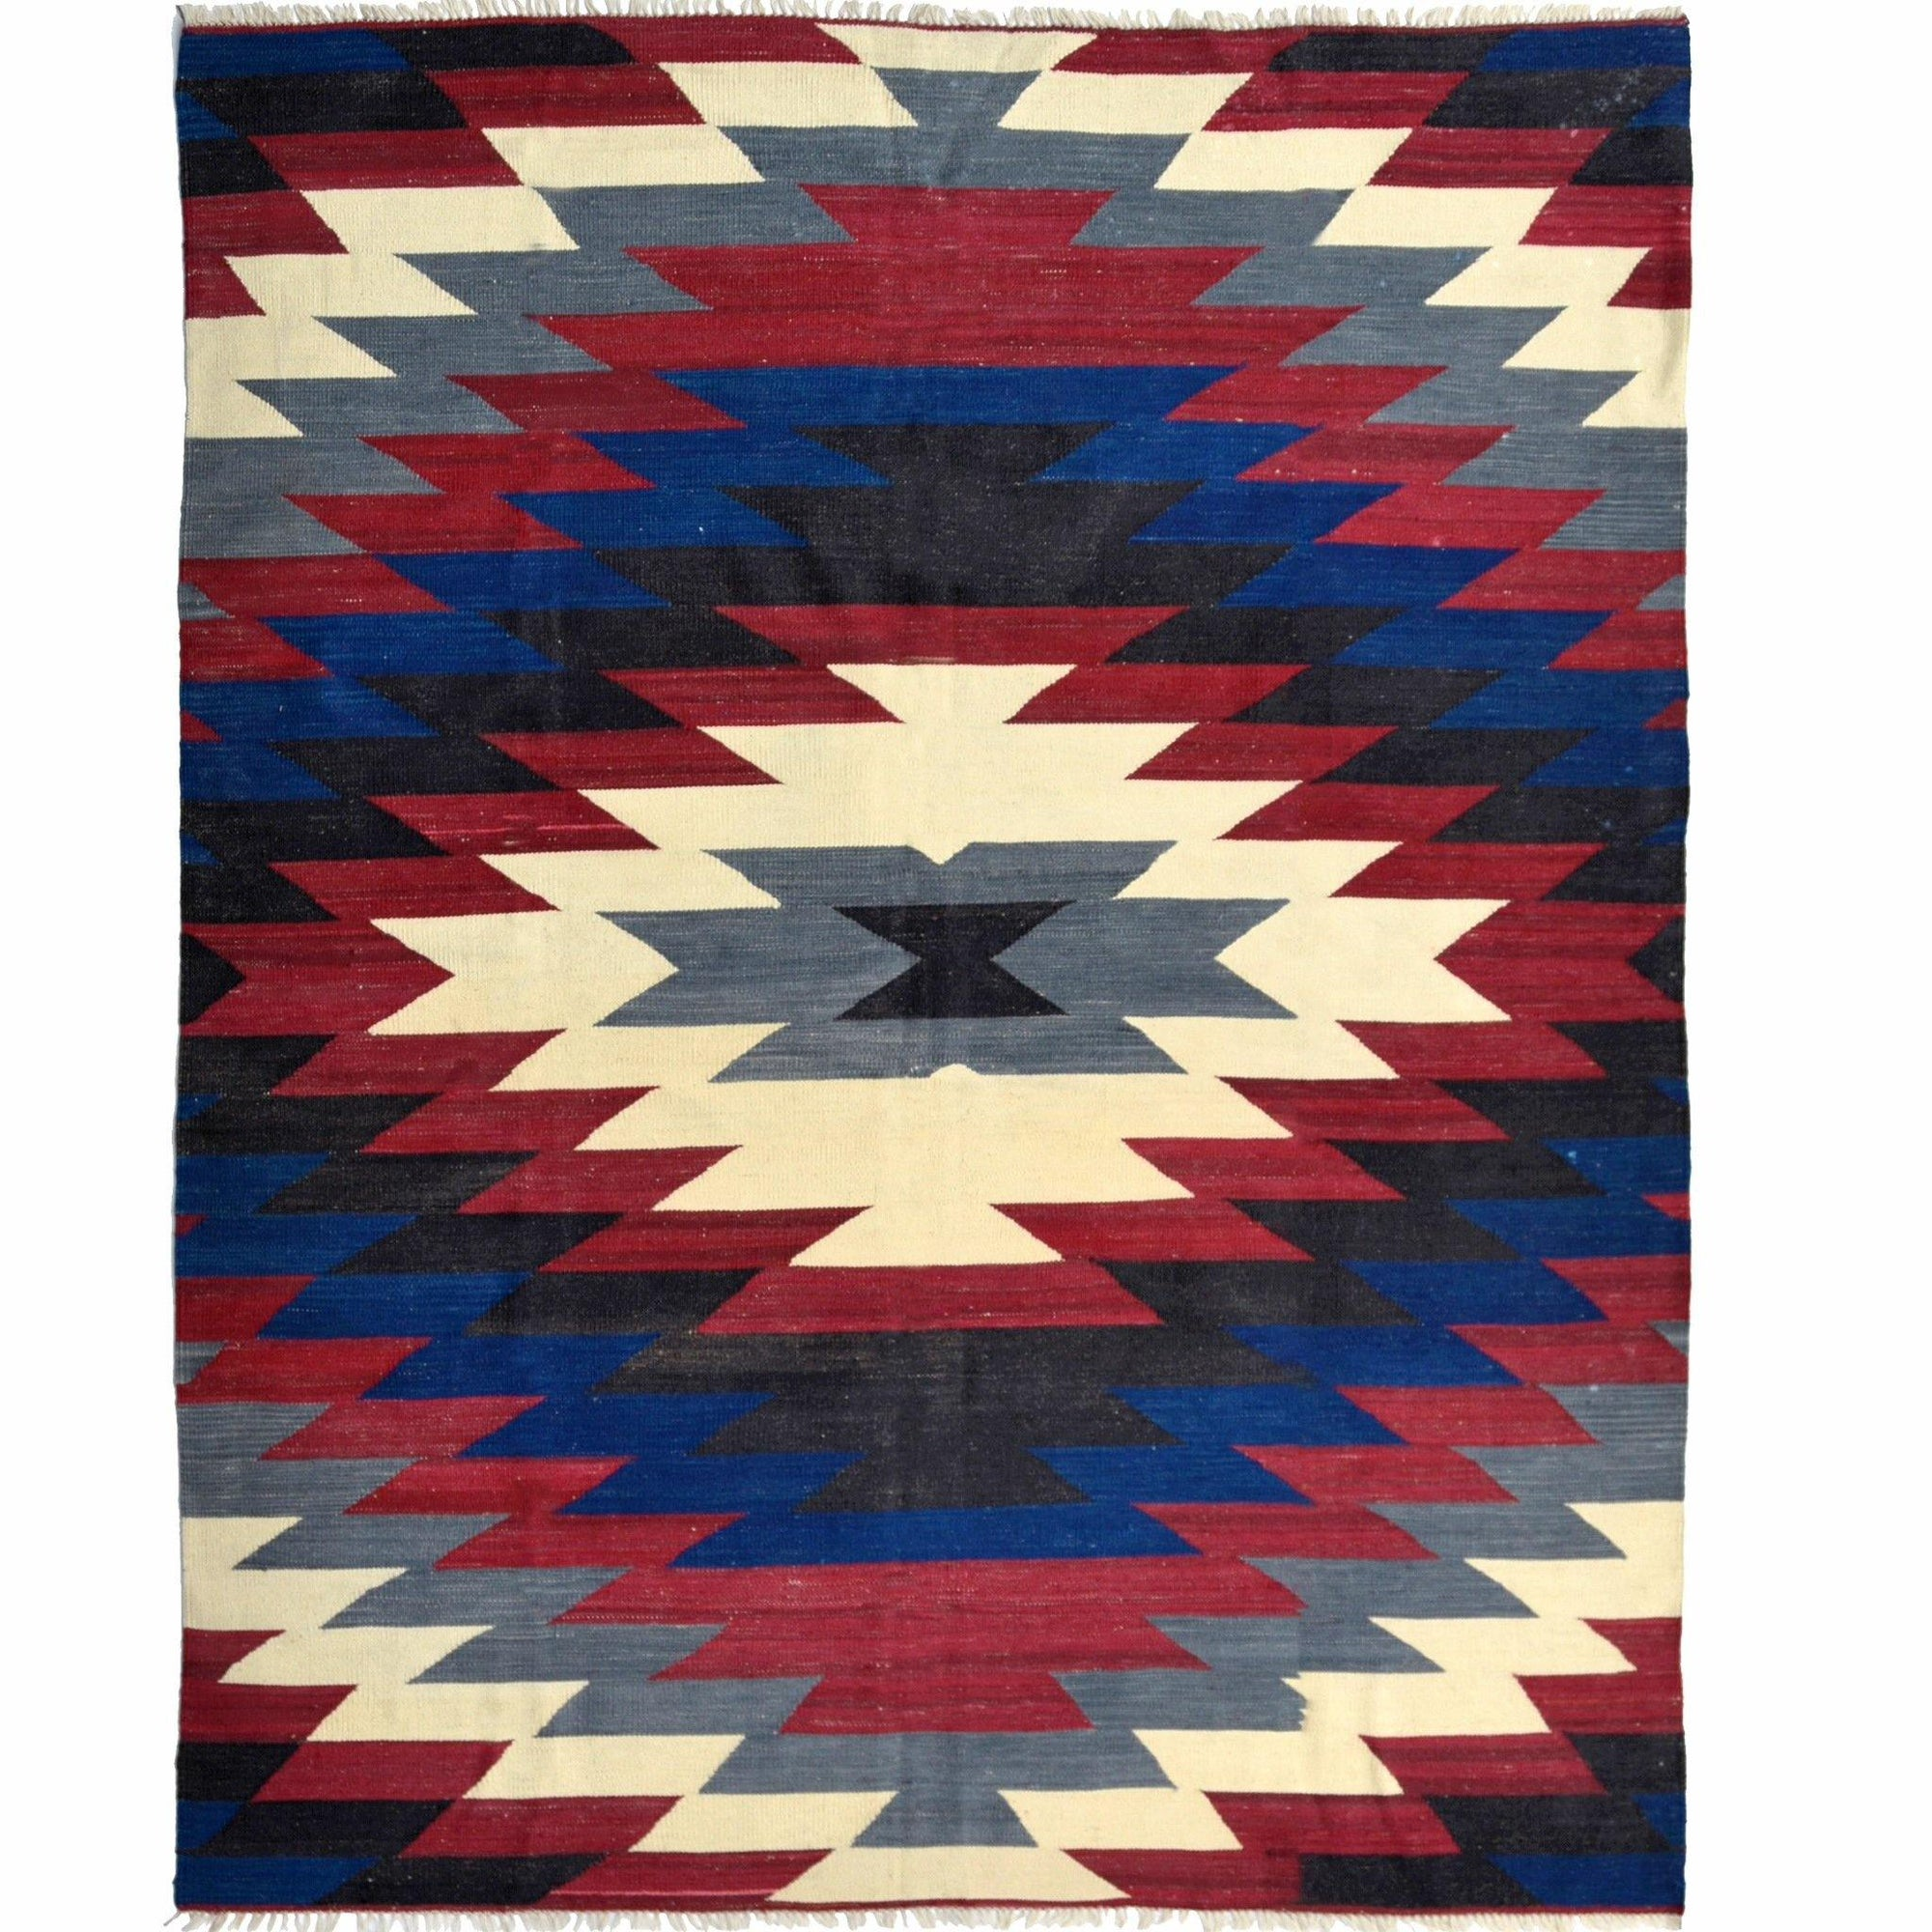 Modern Hand-woven 100% Wool Afghan Chobi Kilim Rug 183cm x 234cm Persian-Rug | House-of-Haghi | NewMarket | Auckland | NZ | Handmade Persian Rugs | Hand Knotted Persian Rugs